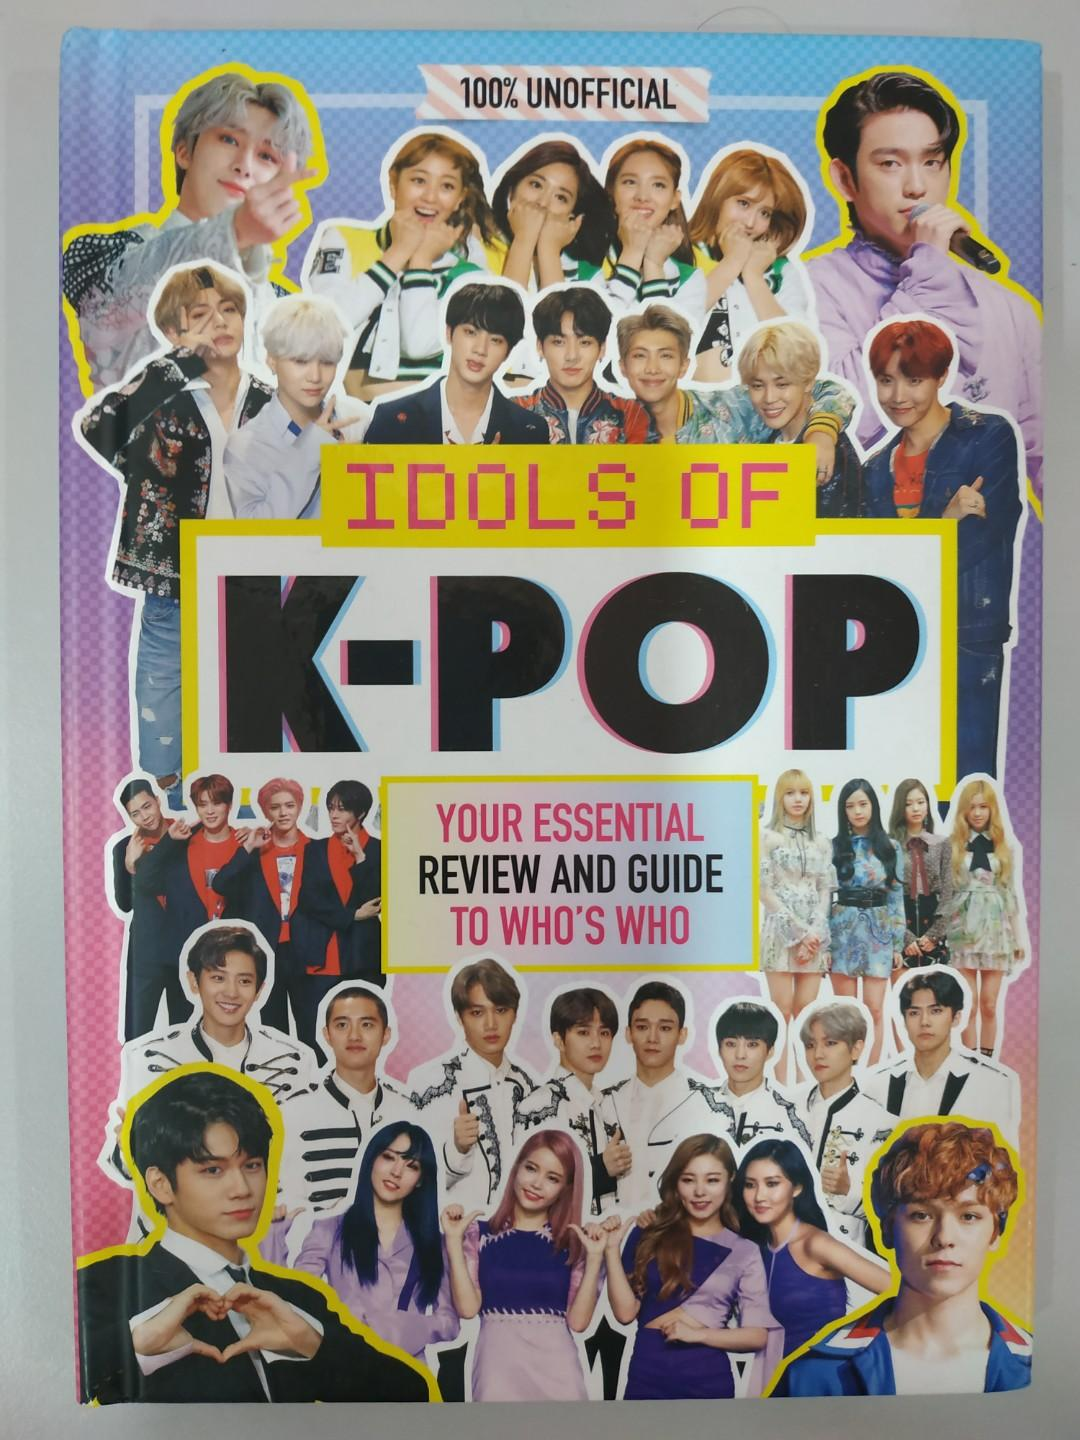 Idols of K-POP (100% Unofficial) - Your Essential Review and Guide to Who's Who